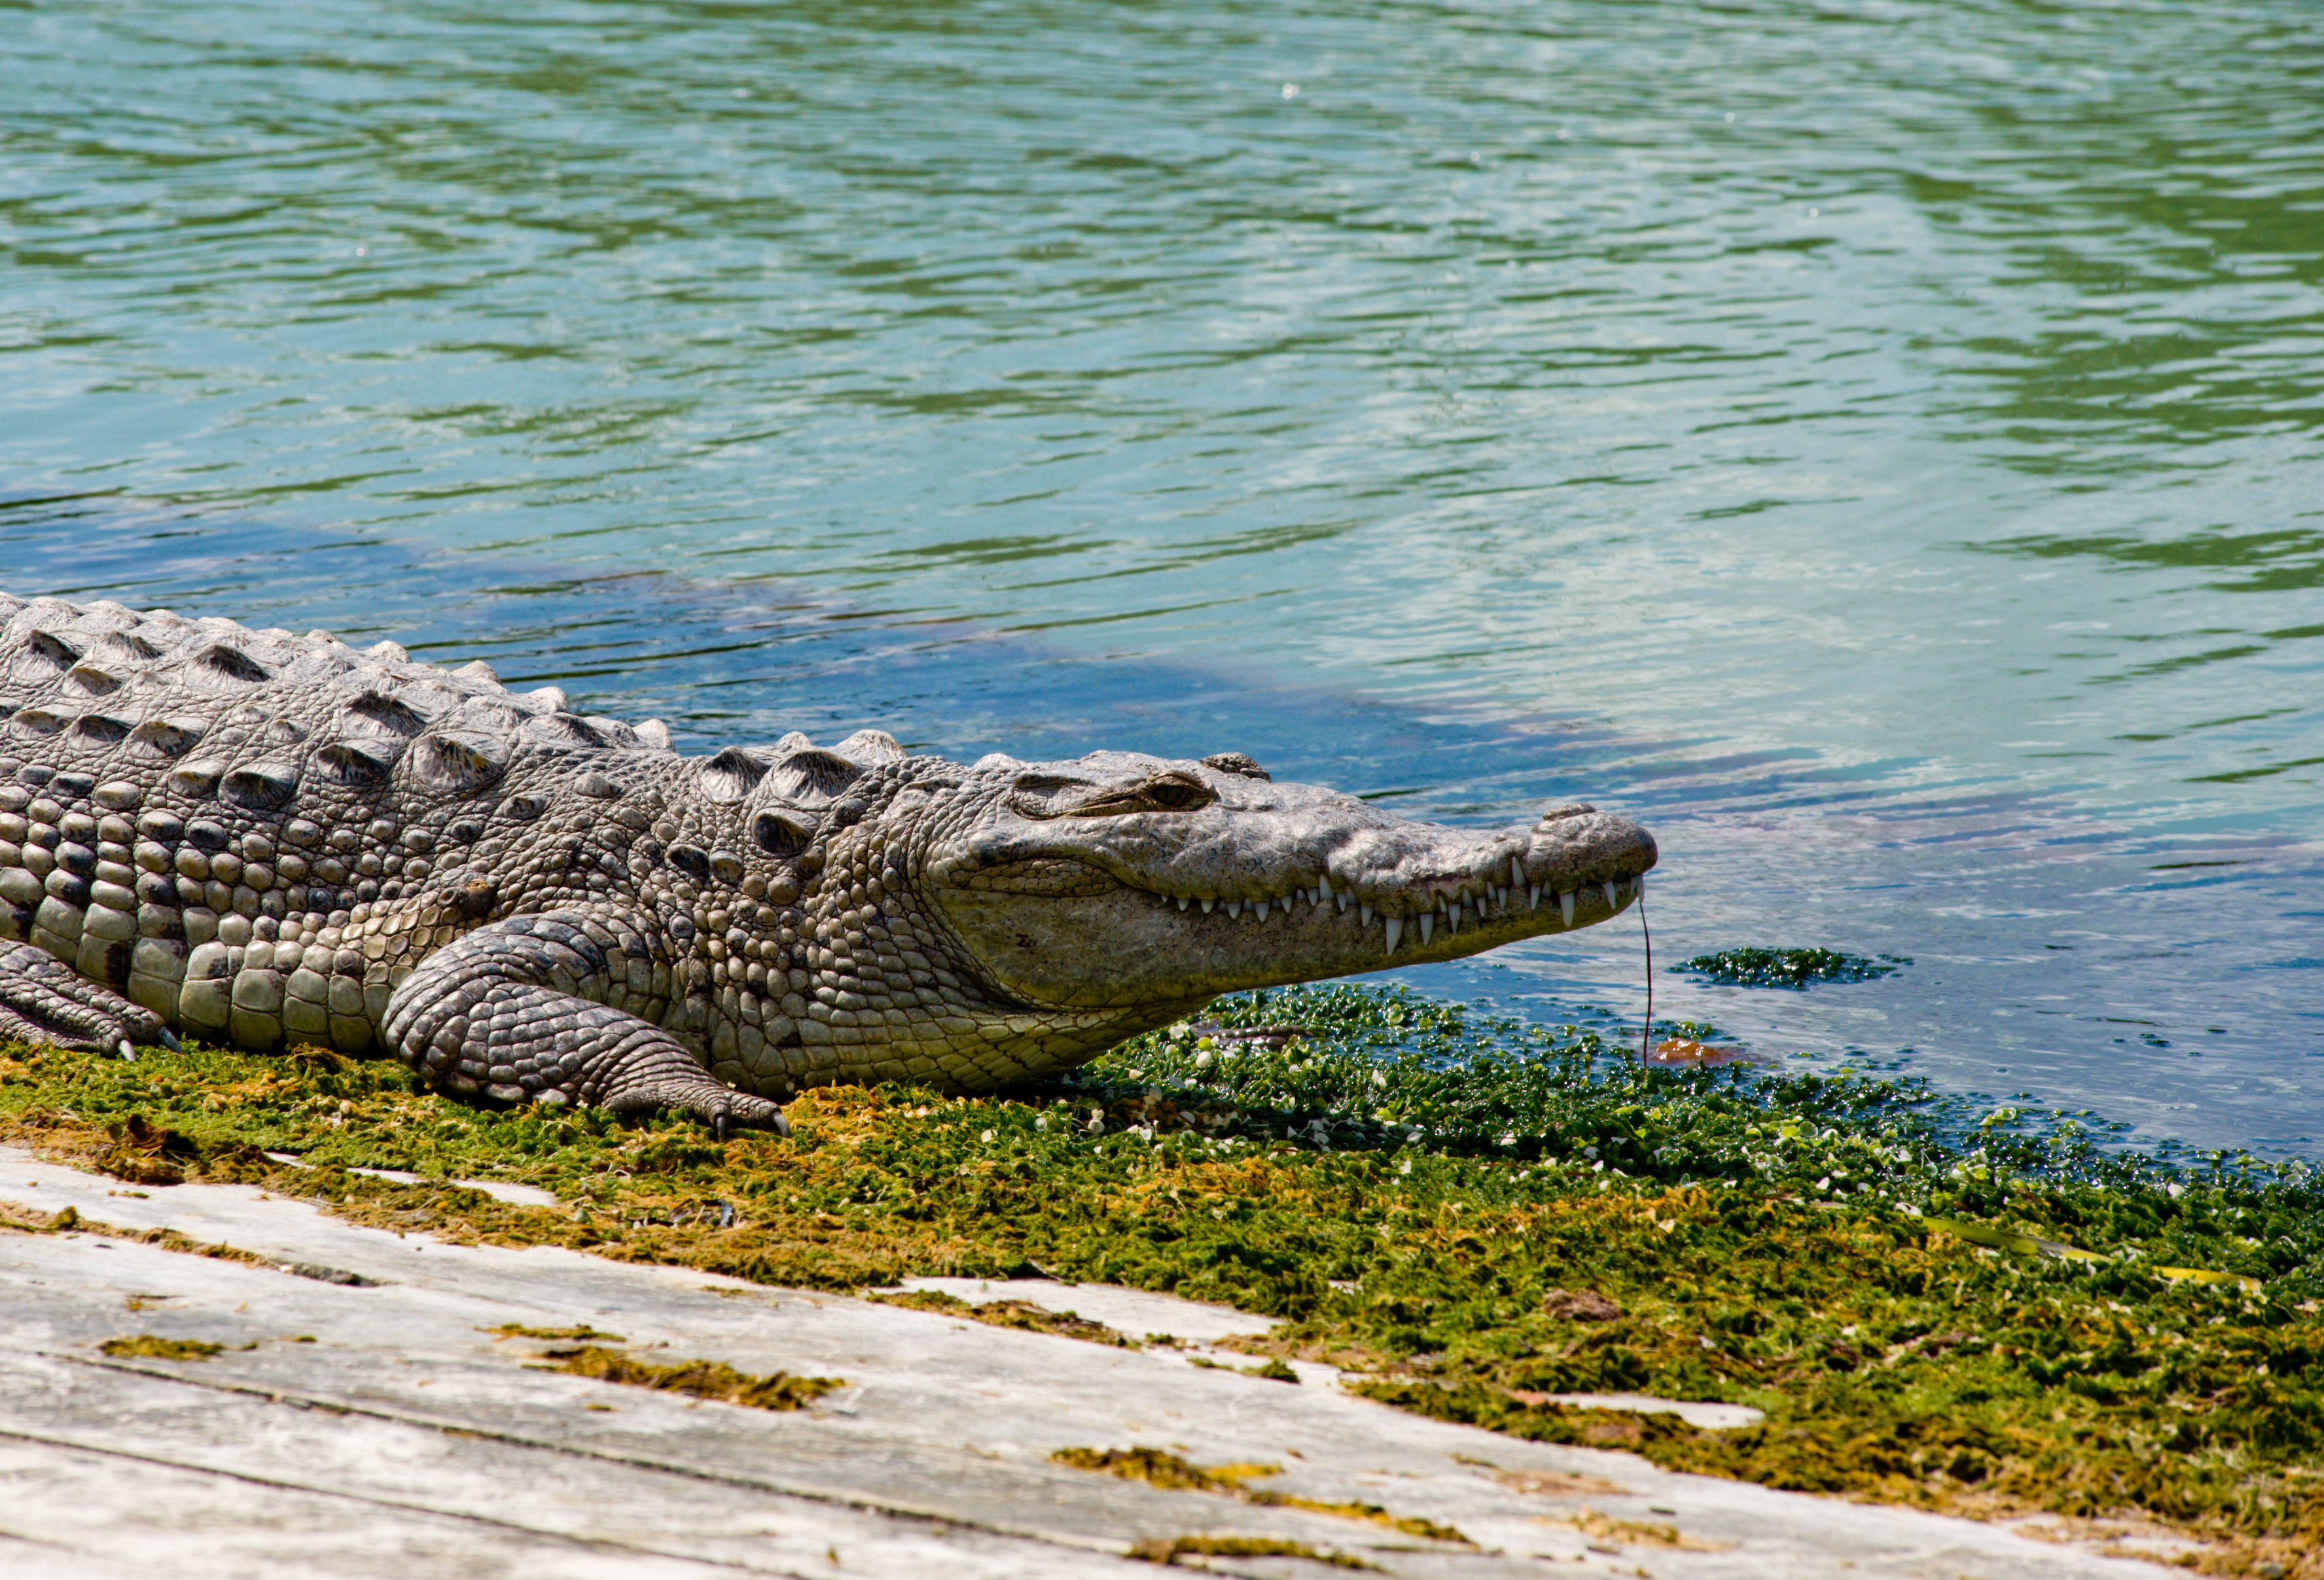 Kakadu National Park is renowned for its alligators